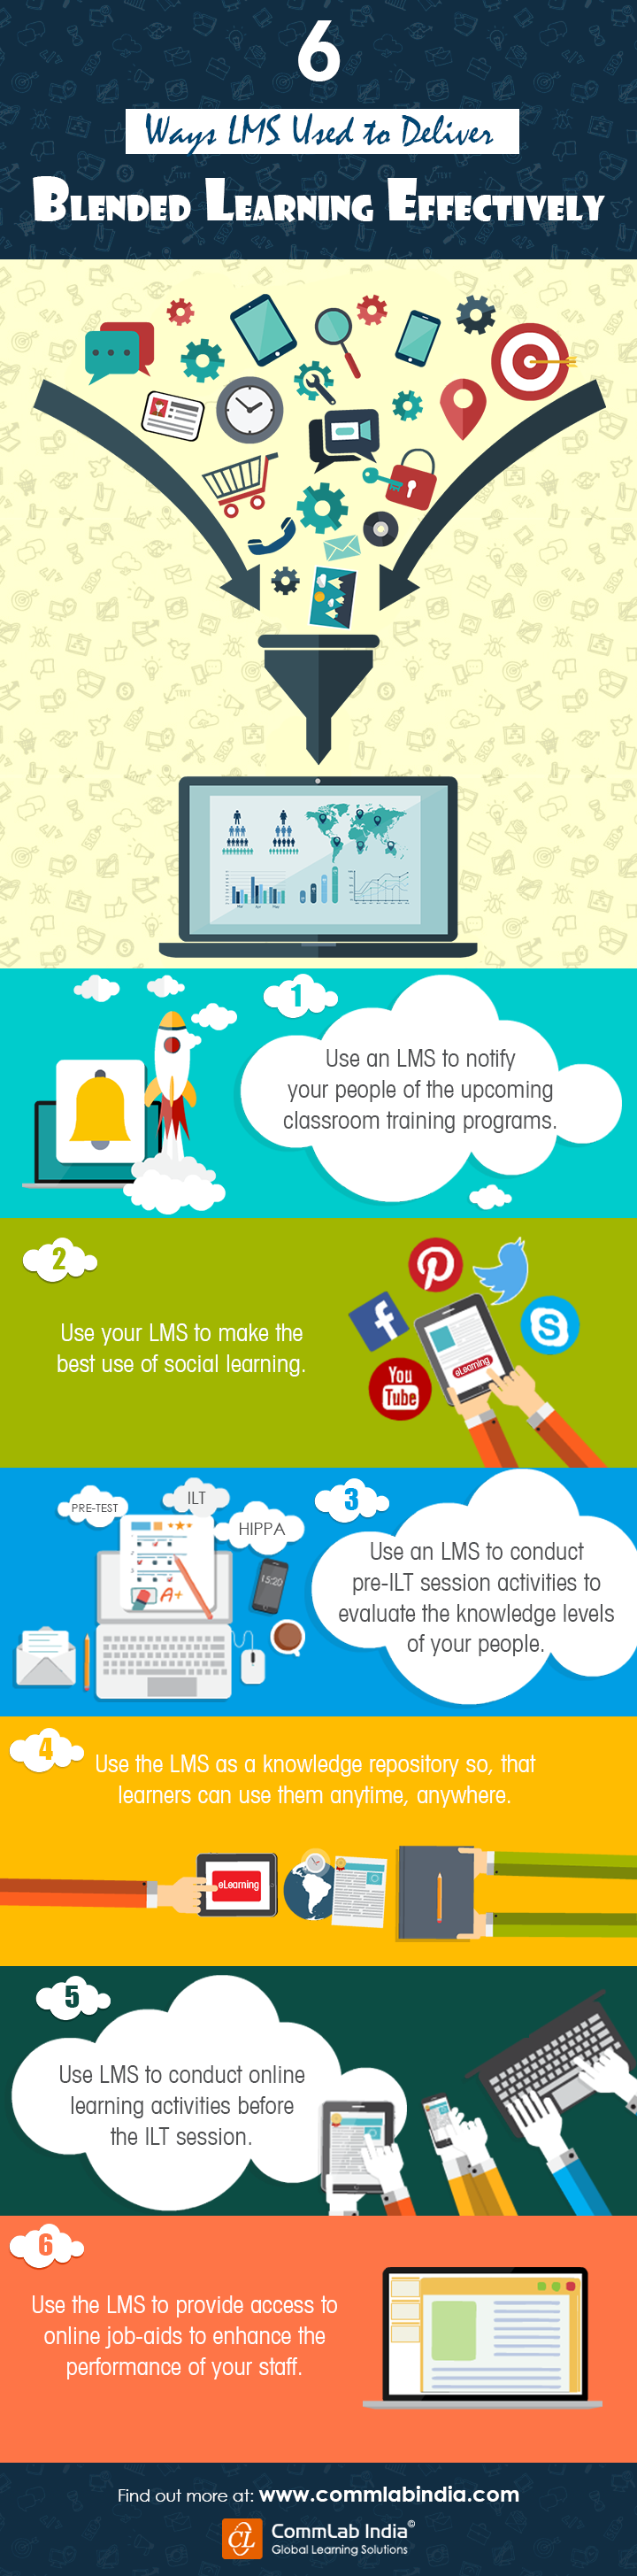 6 Ways An LMS Can be Used to Deliver Blended Learning Effectively [Infographic]